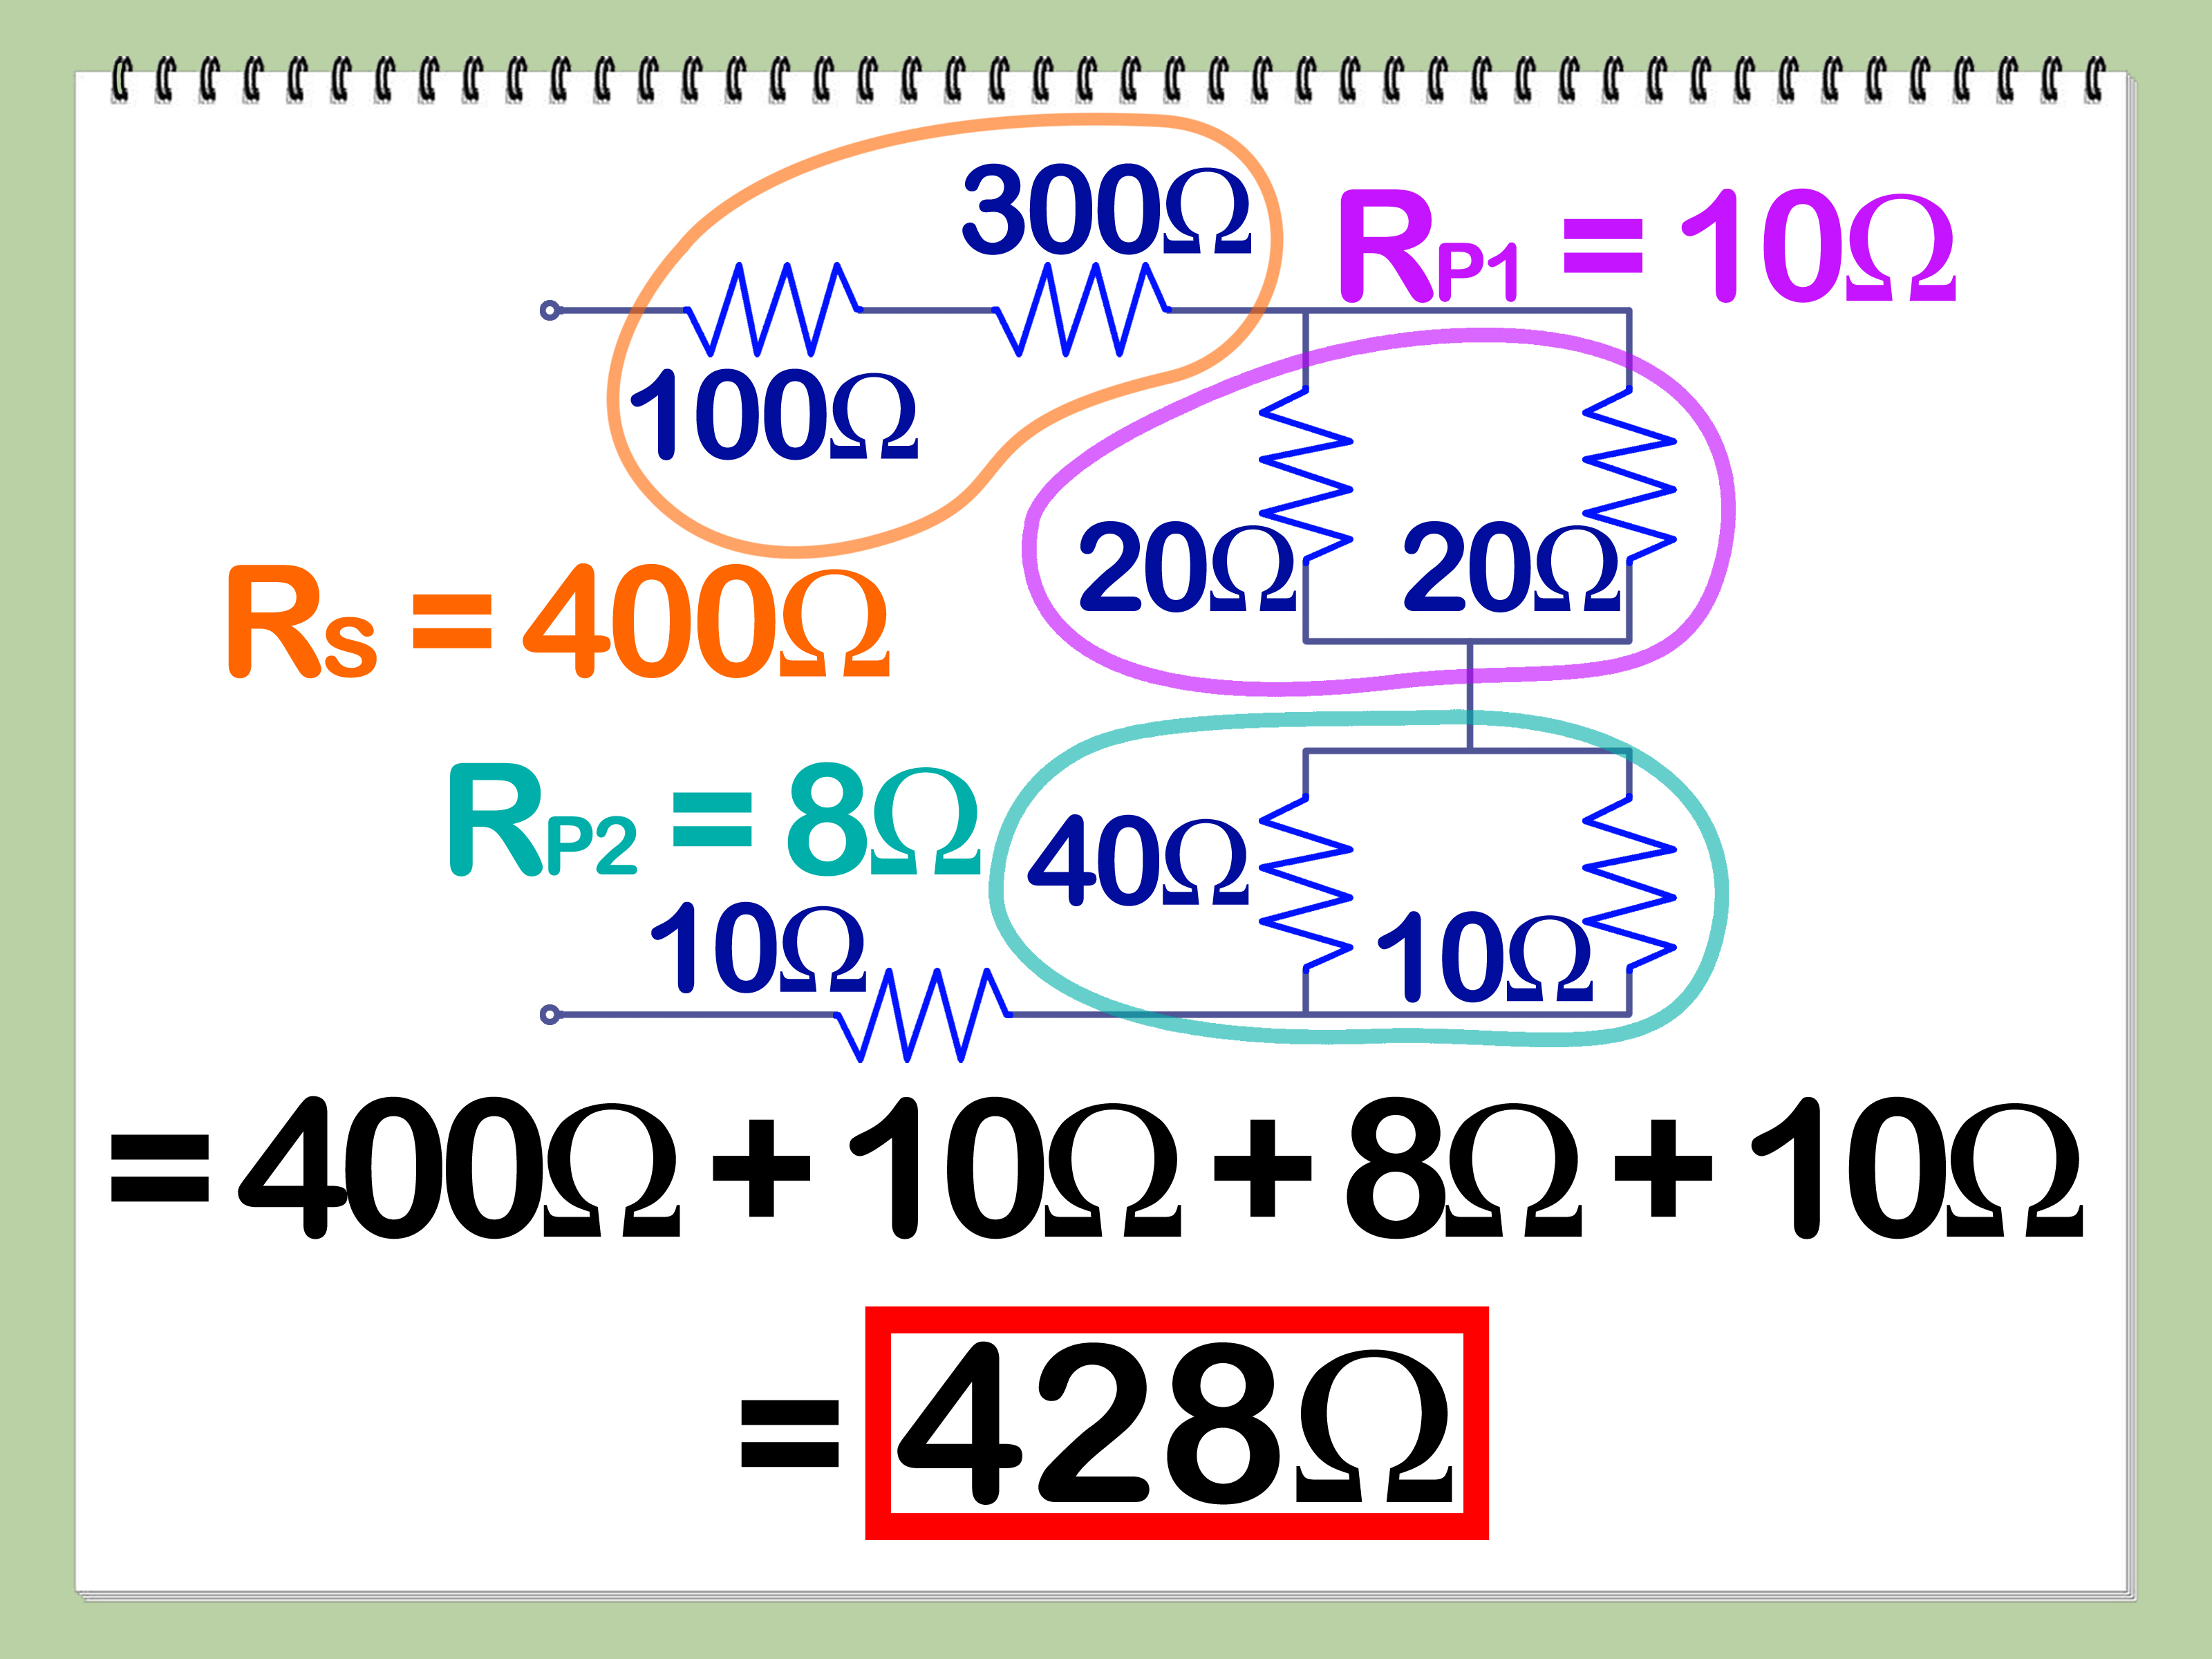 Cool How To Calculate Series And Parallel Resistance With Cheat Sheets Dandim Mohammedshrine Wiring Diagrams Dandimmohammedshrineorg